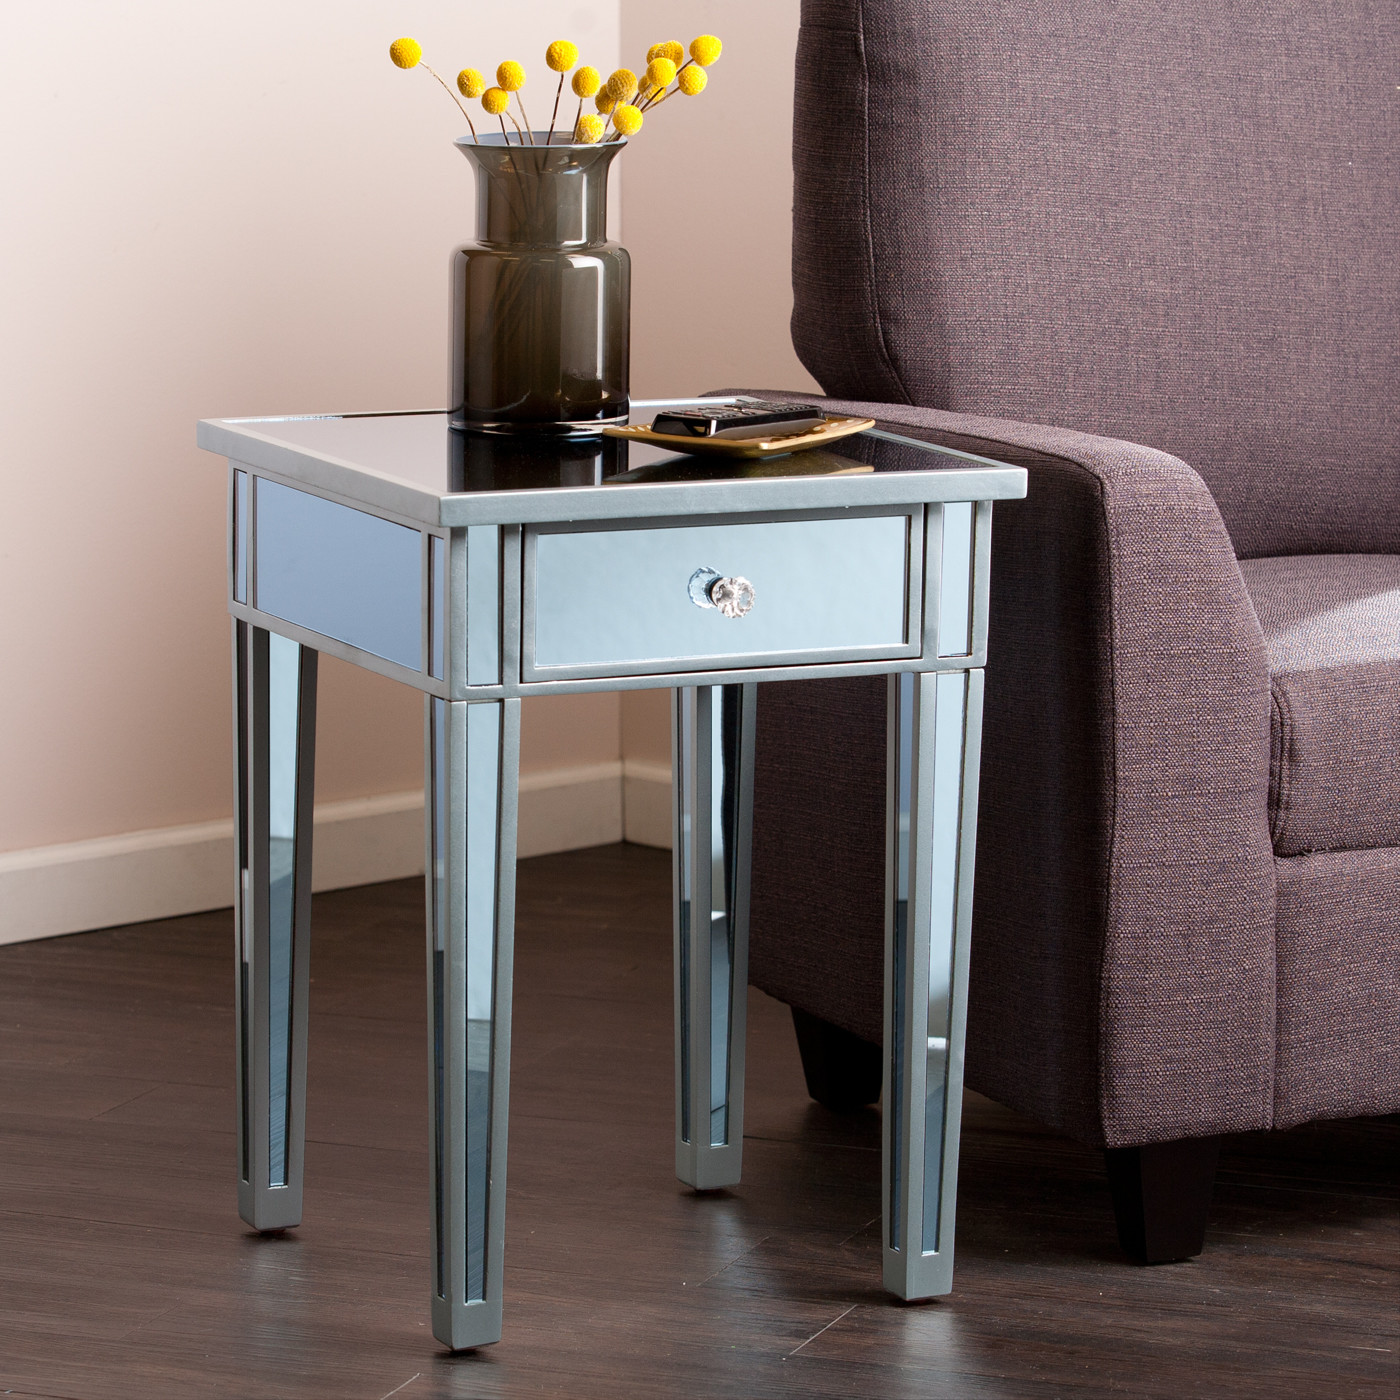 mirrored accent table hotel odaurze designs metal mirror mango sideboard hobby lobby decorations pub style kitchen dining chair set inch square tablecloth target room cube storage